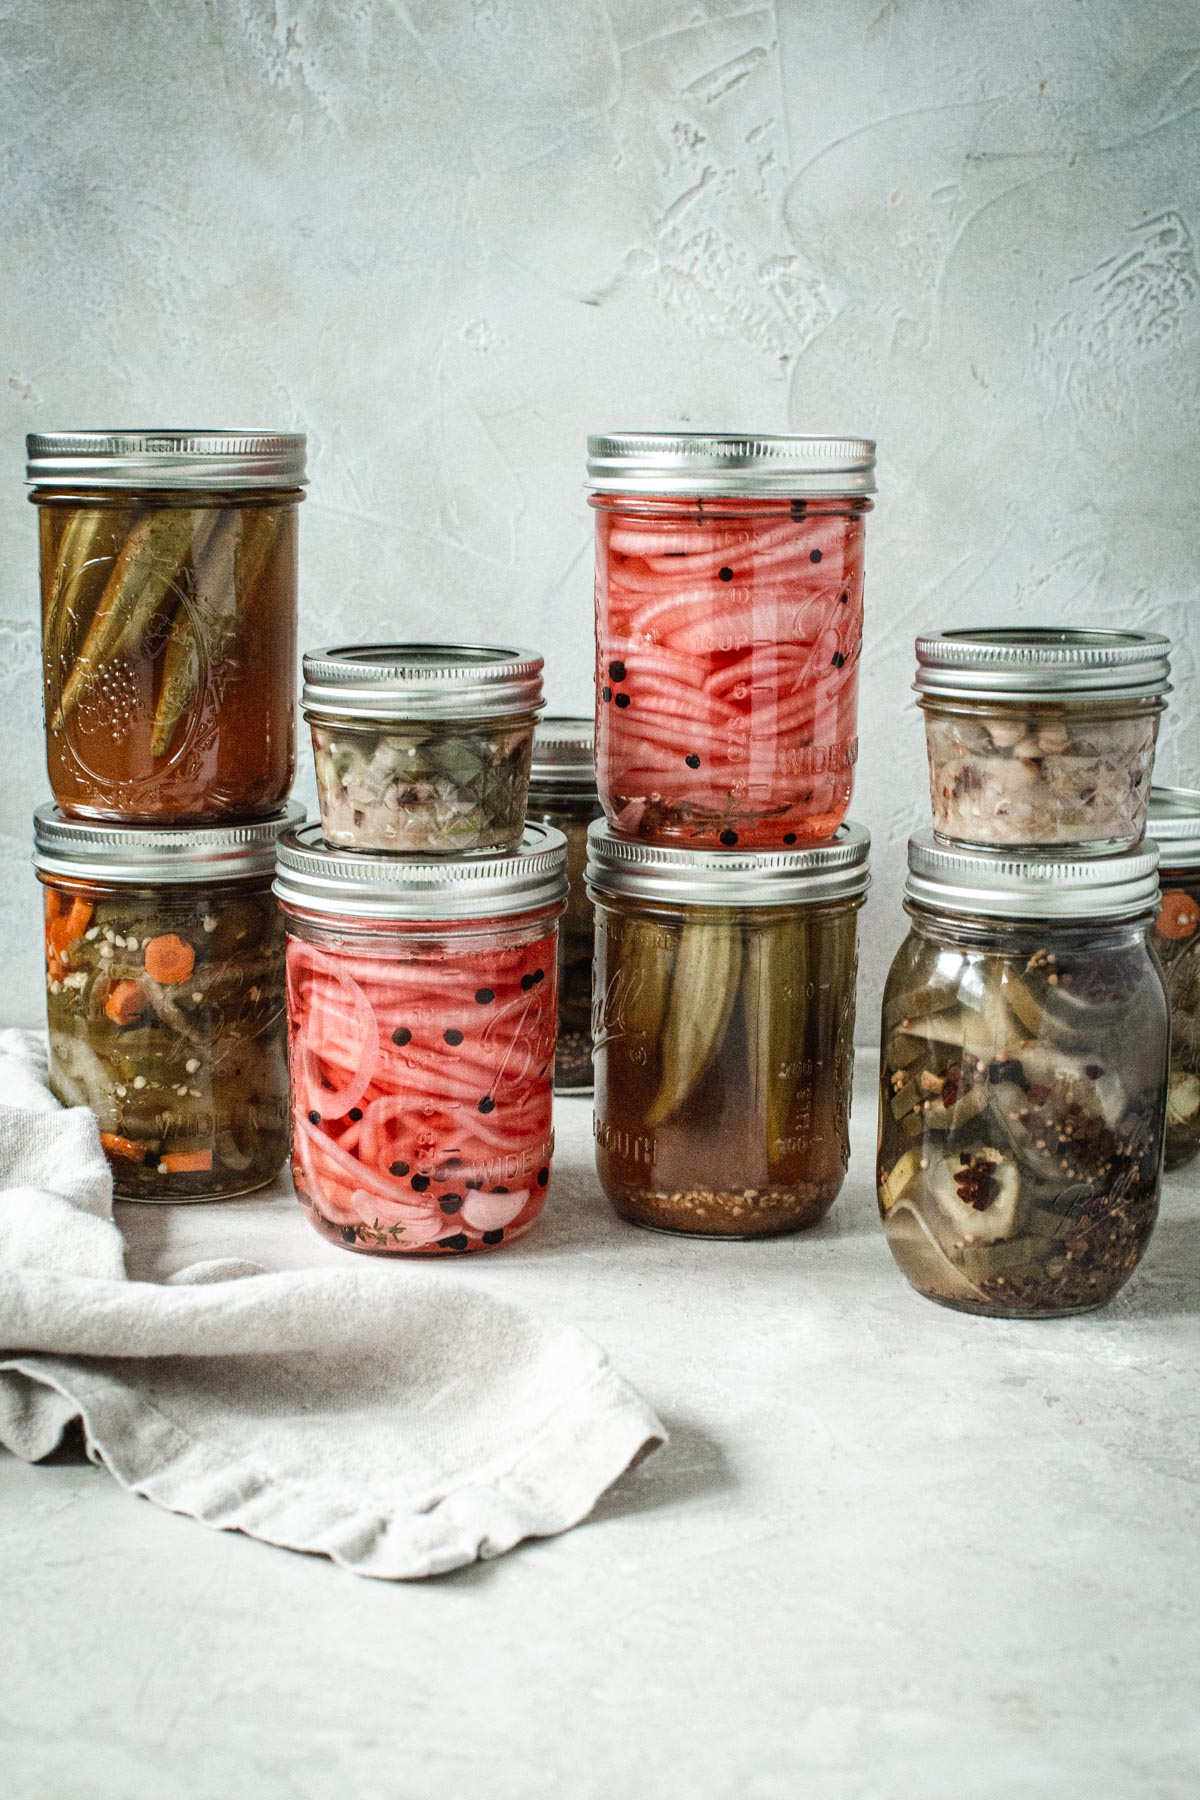 Jars of pickled vegetables stacked on top of each other.